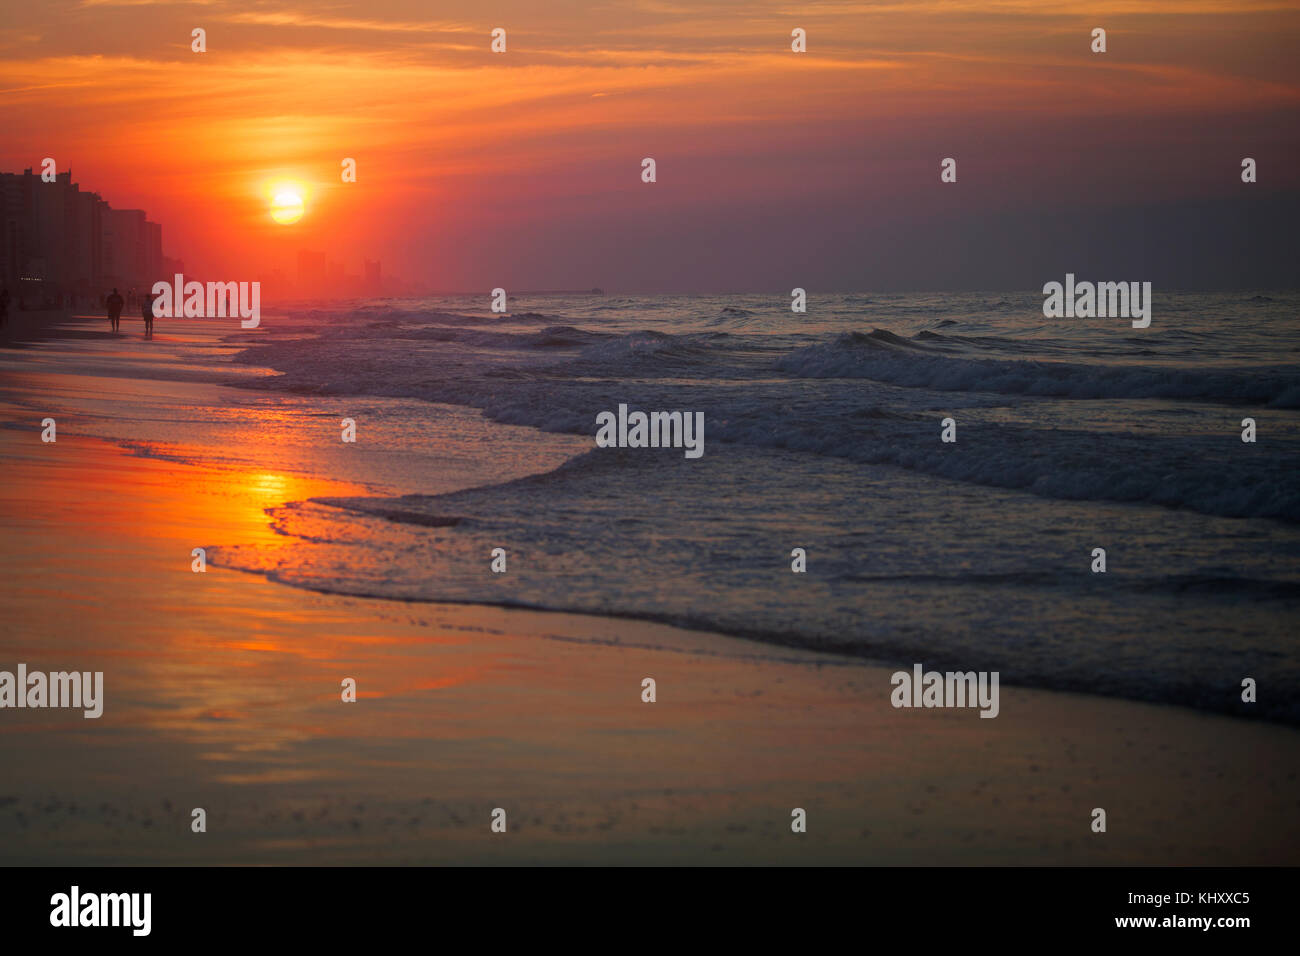 People On Beach At Sunset North Myrtle South Carolina United States